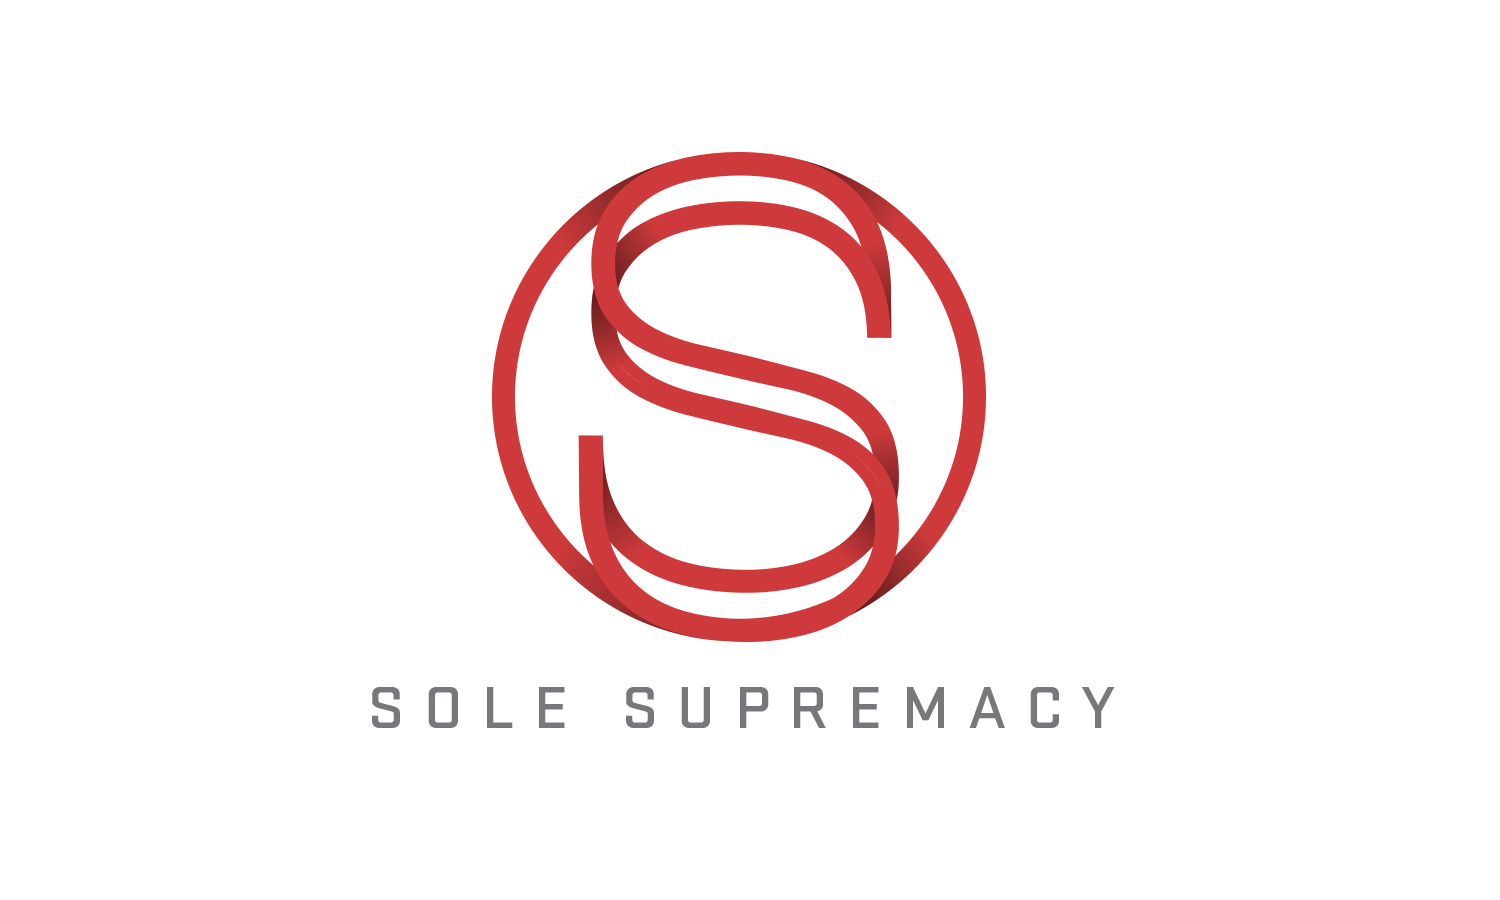 Sole Supremacy, www.solesupremacy.com